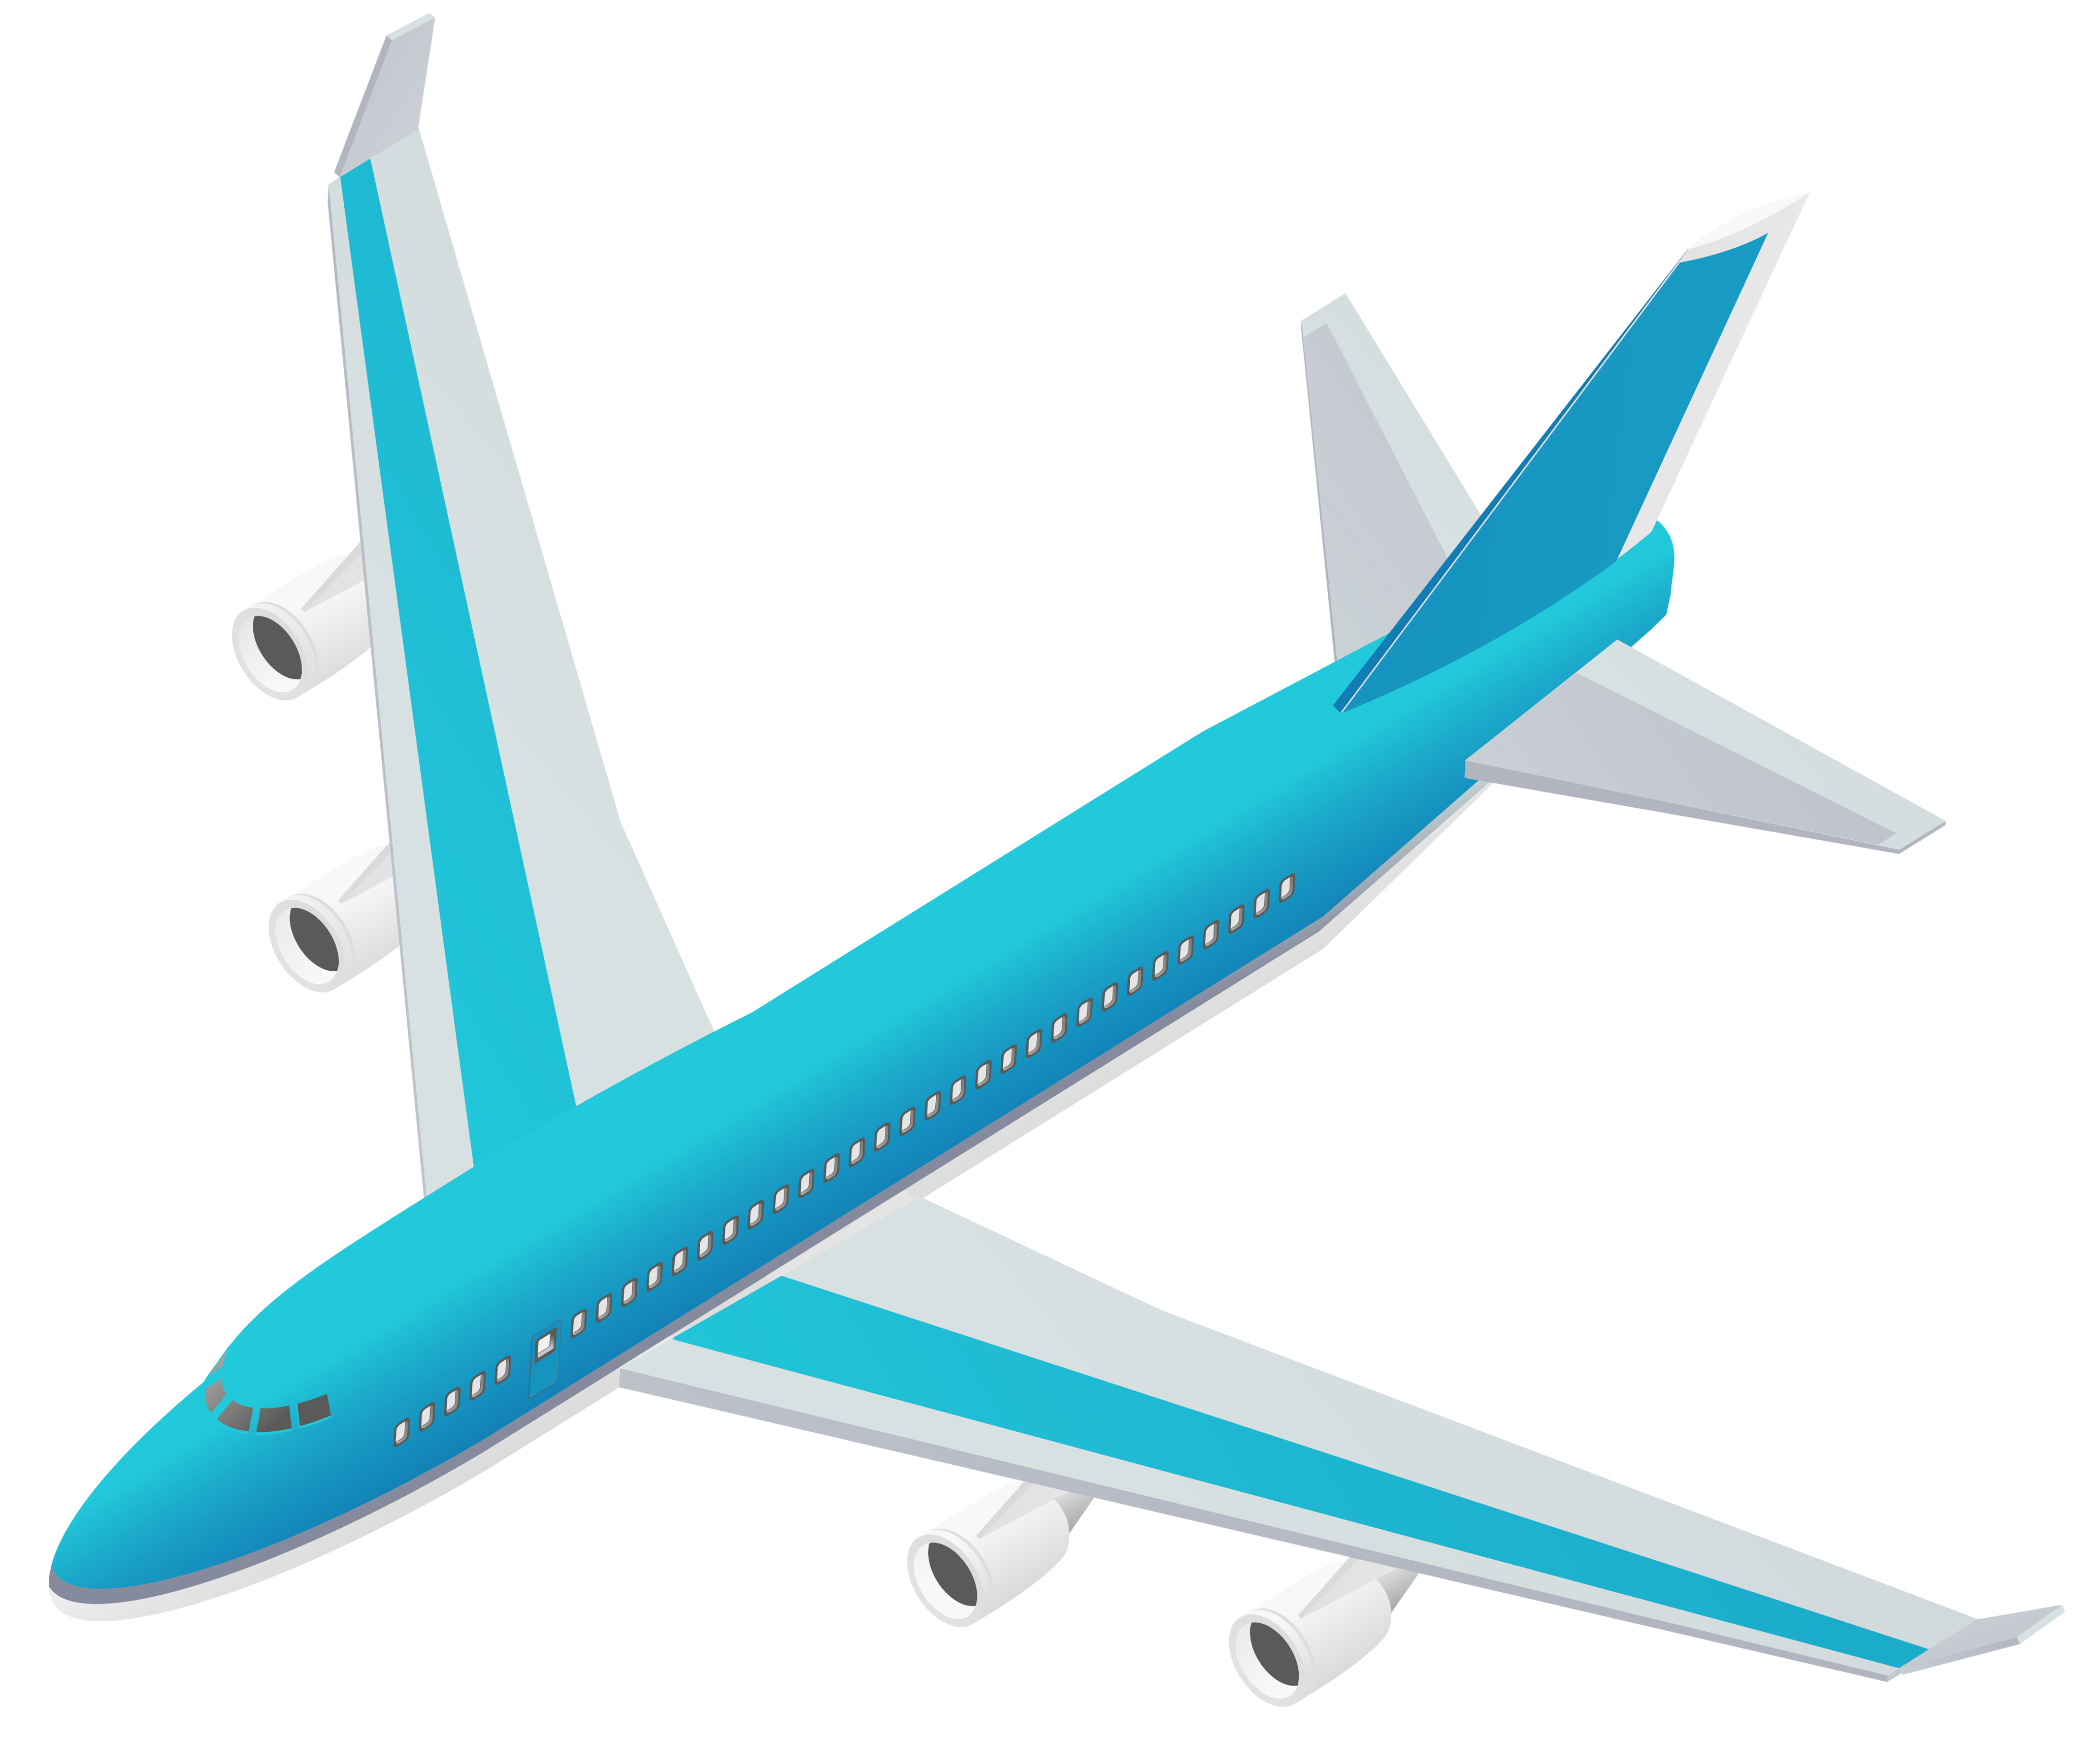 clipart transparent library Vector aviation airplane clipart. Blue transparent png gallery